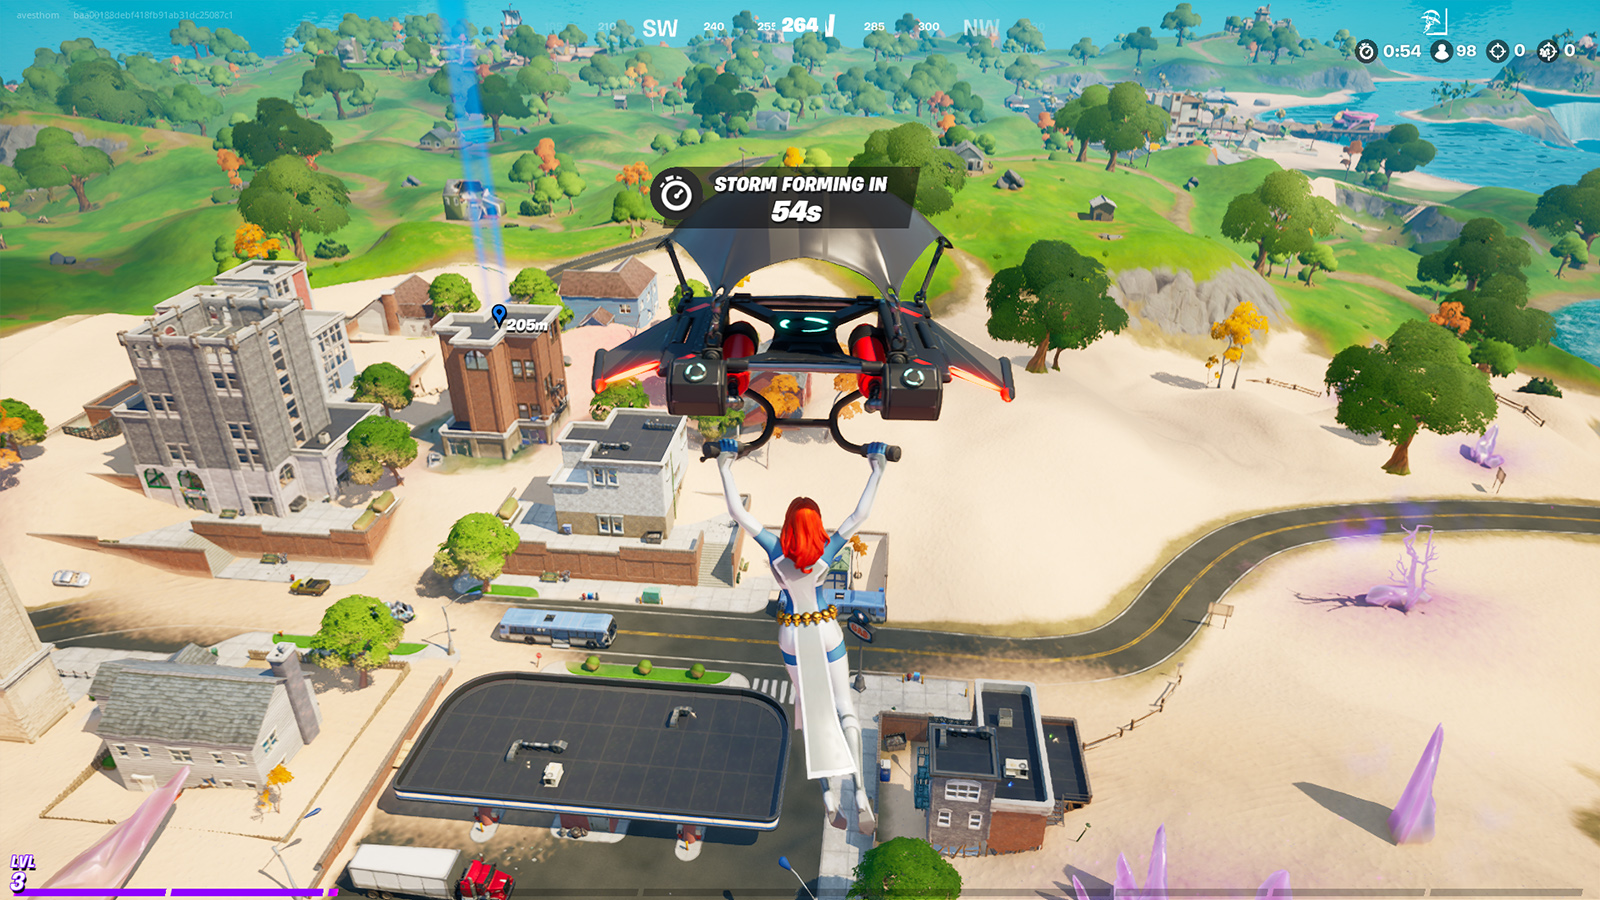 Tilted Towers is back as Salty Towers in the new update